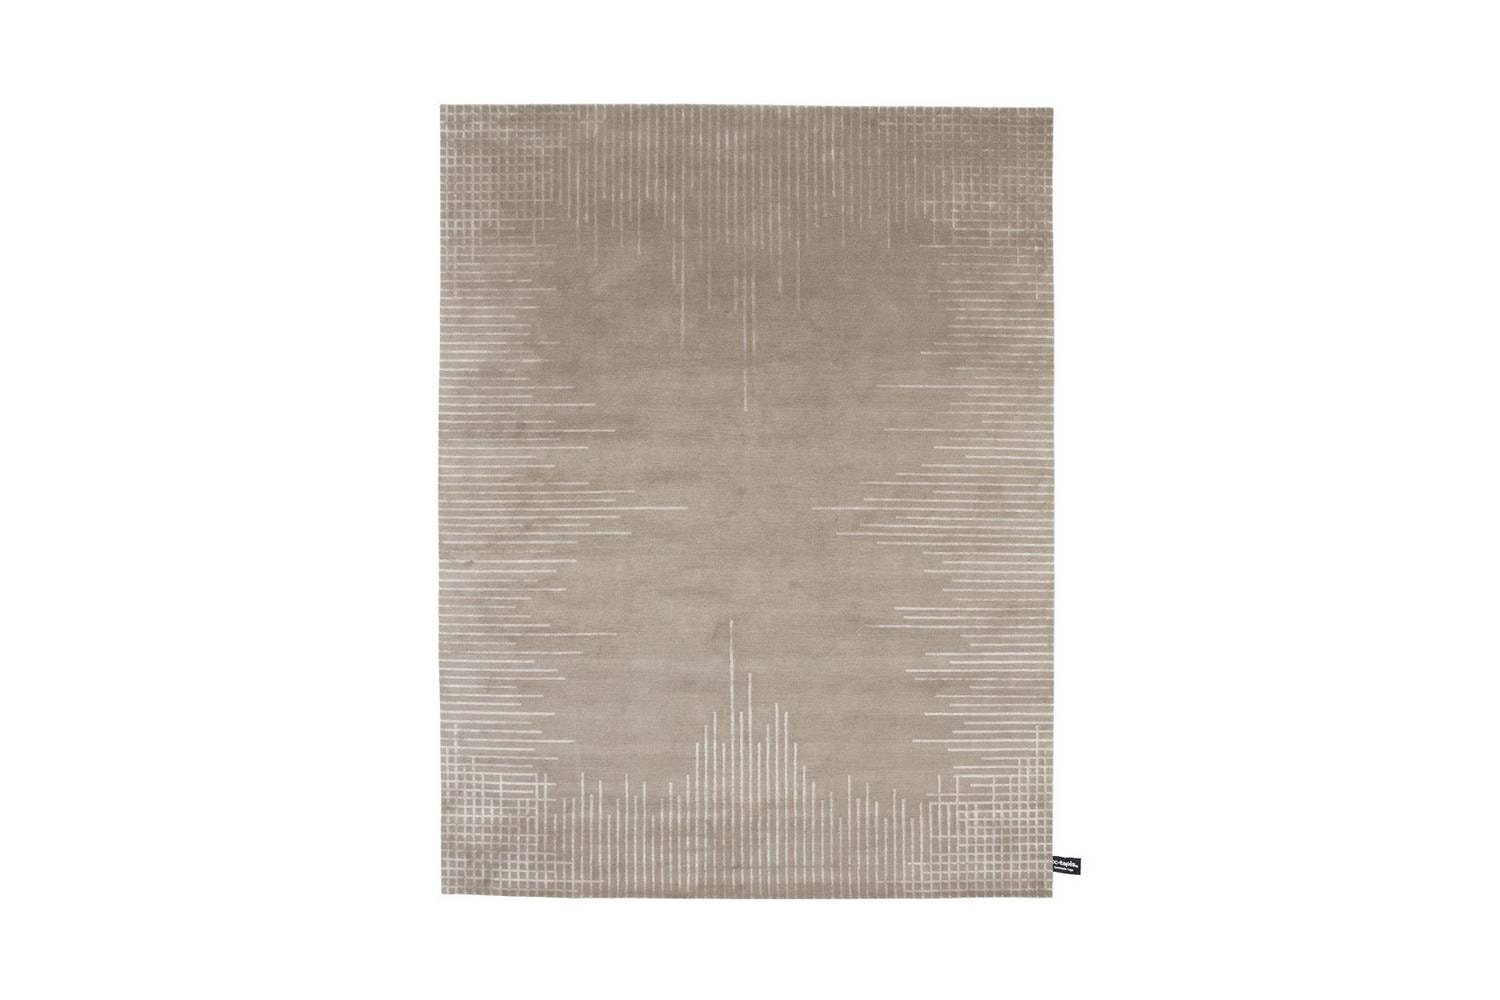 Trecentocinquantasei Rug by Architectural Collection for CC-Tapis